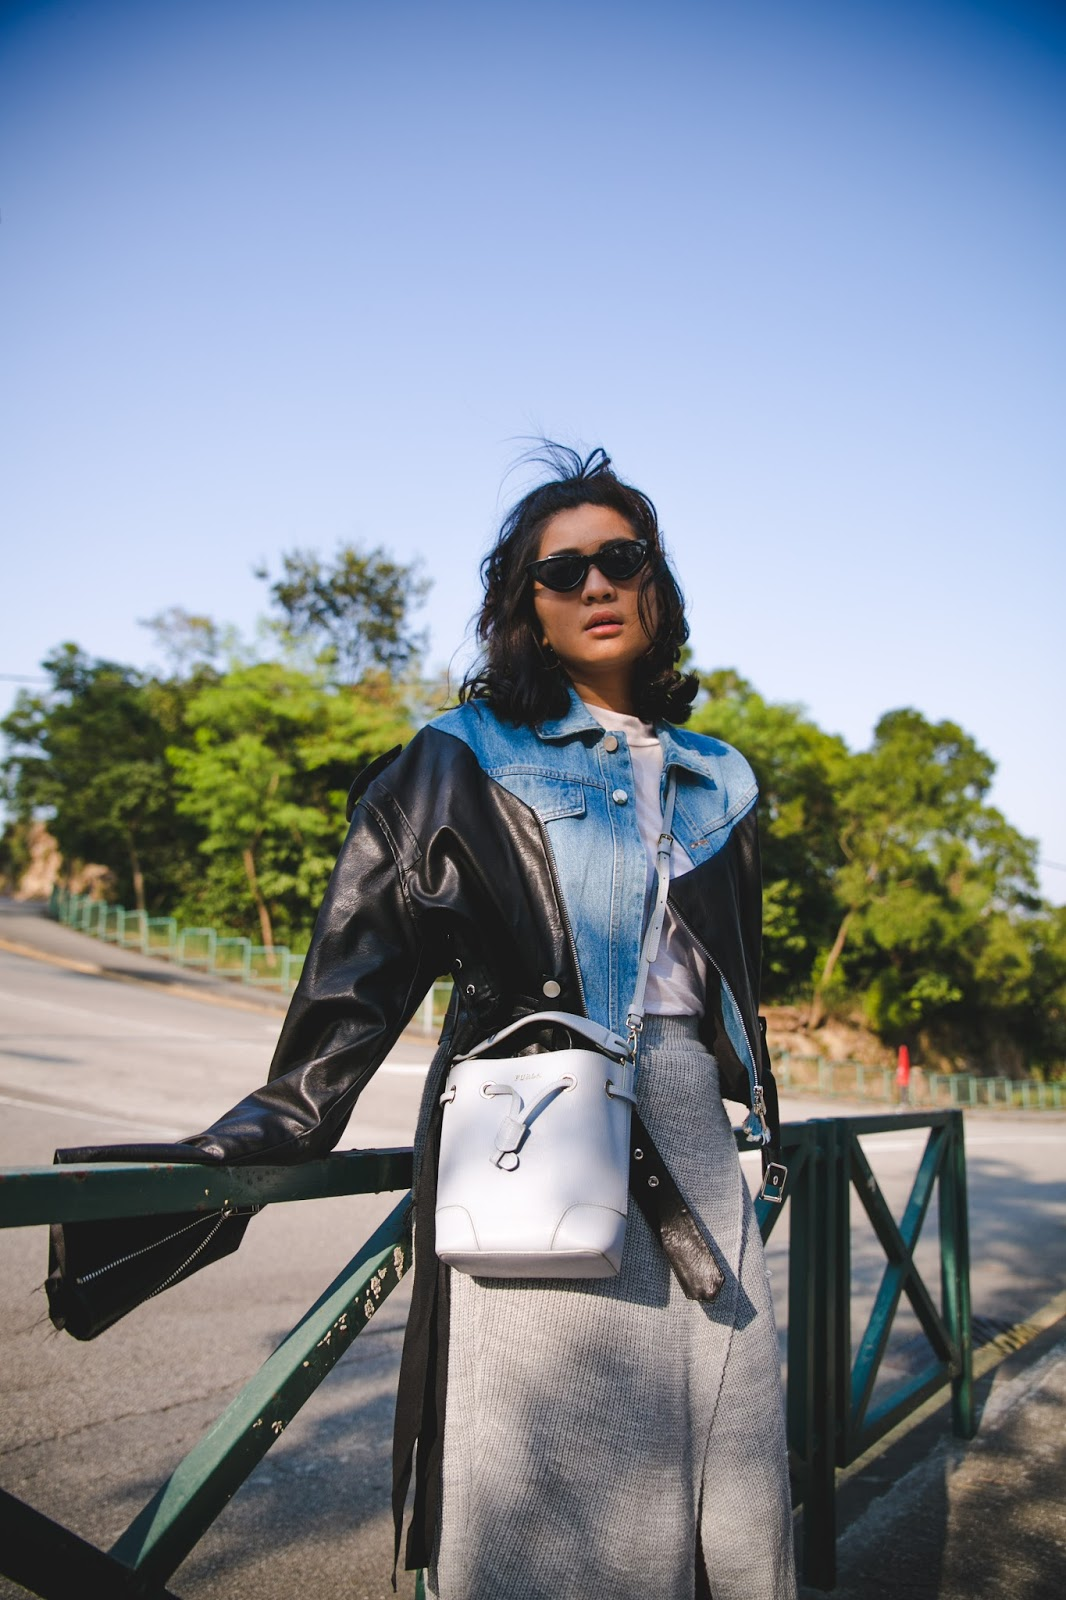 macau fashion blogger wearing denim and leather jacket